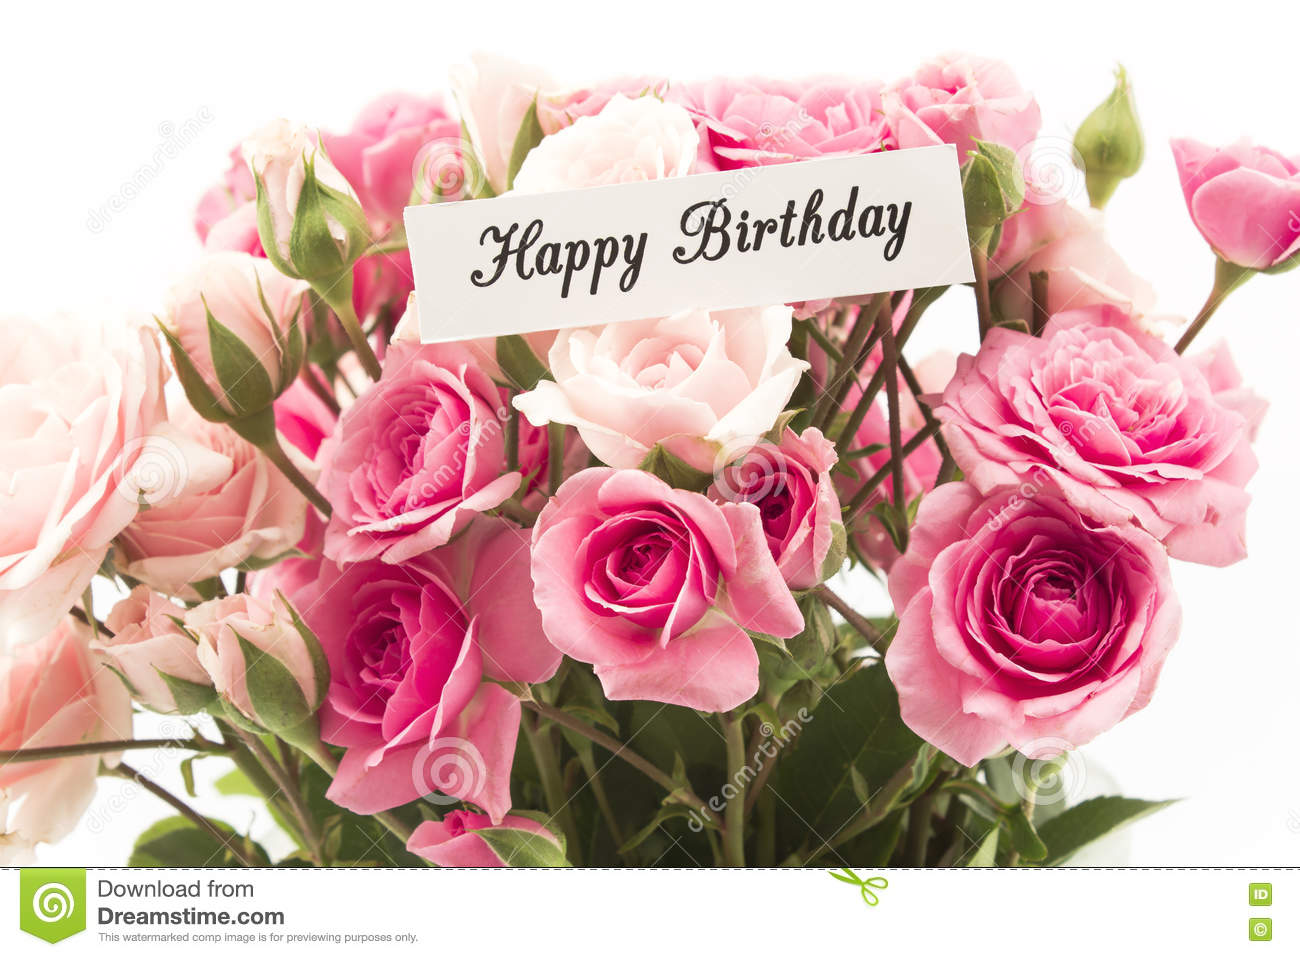 Happy Birthday Greetings With Flowers Nicewishes